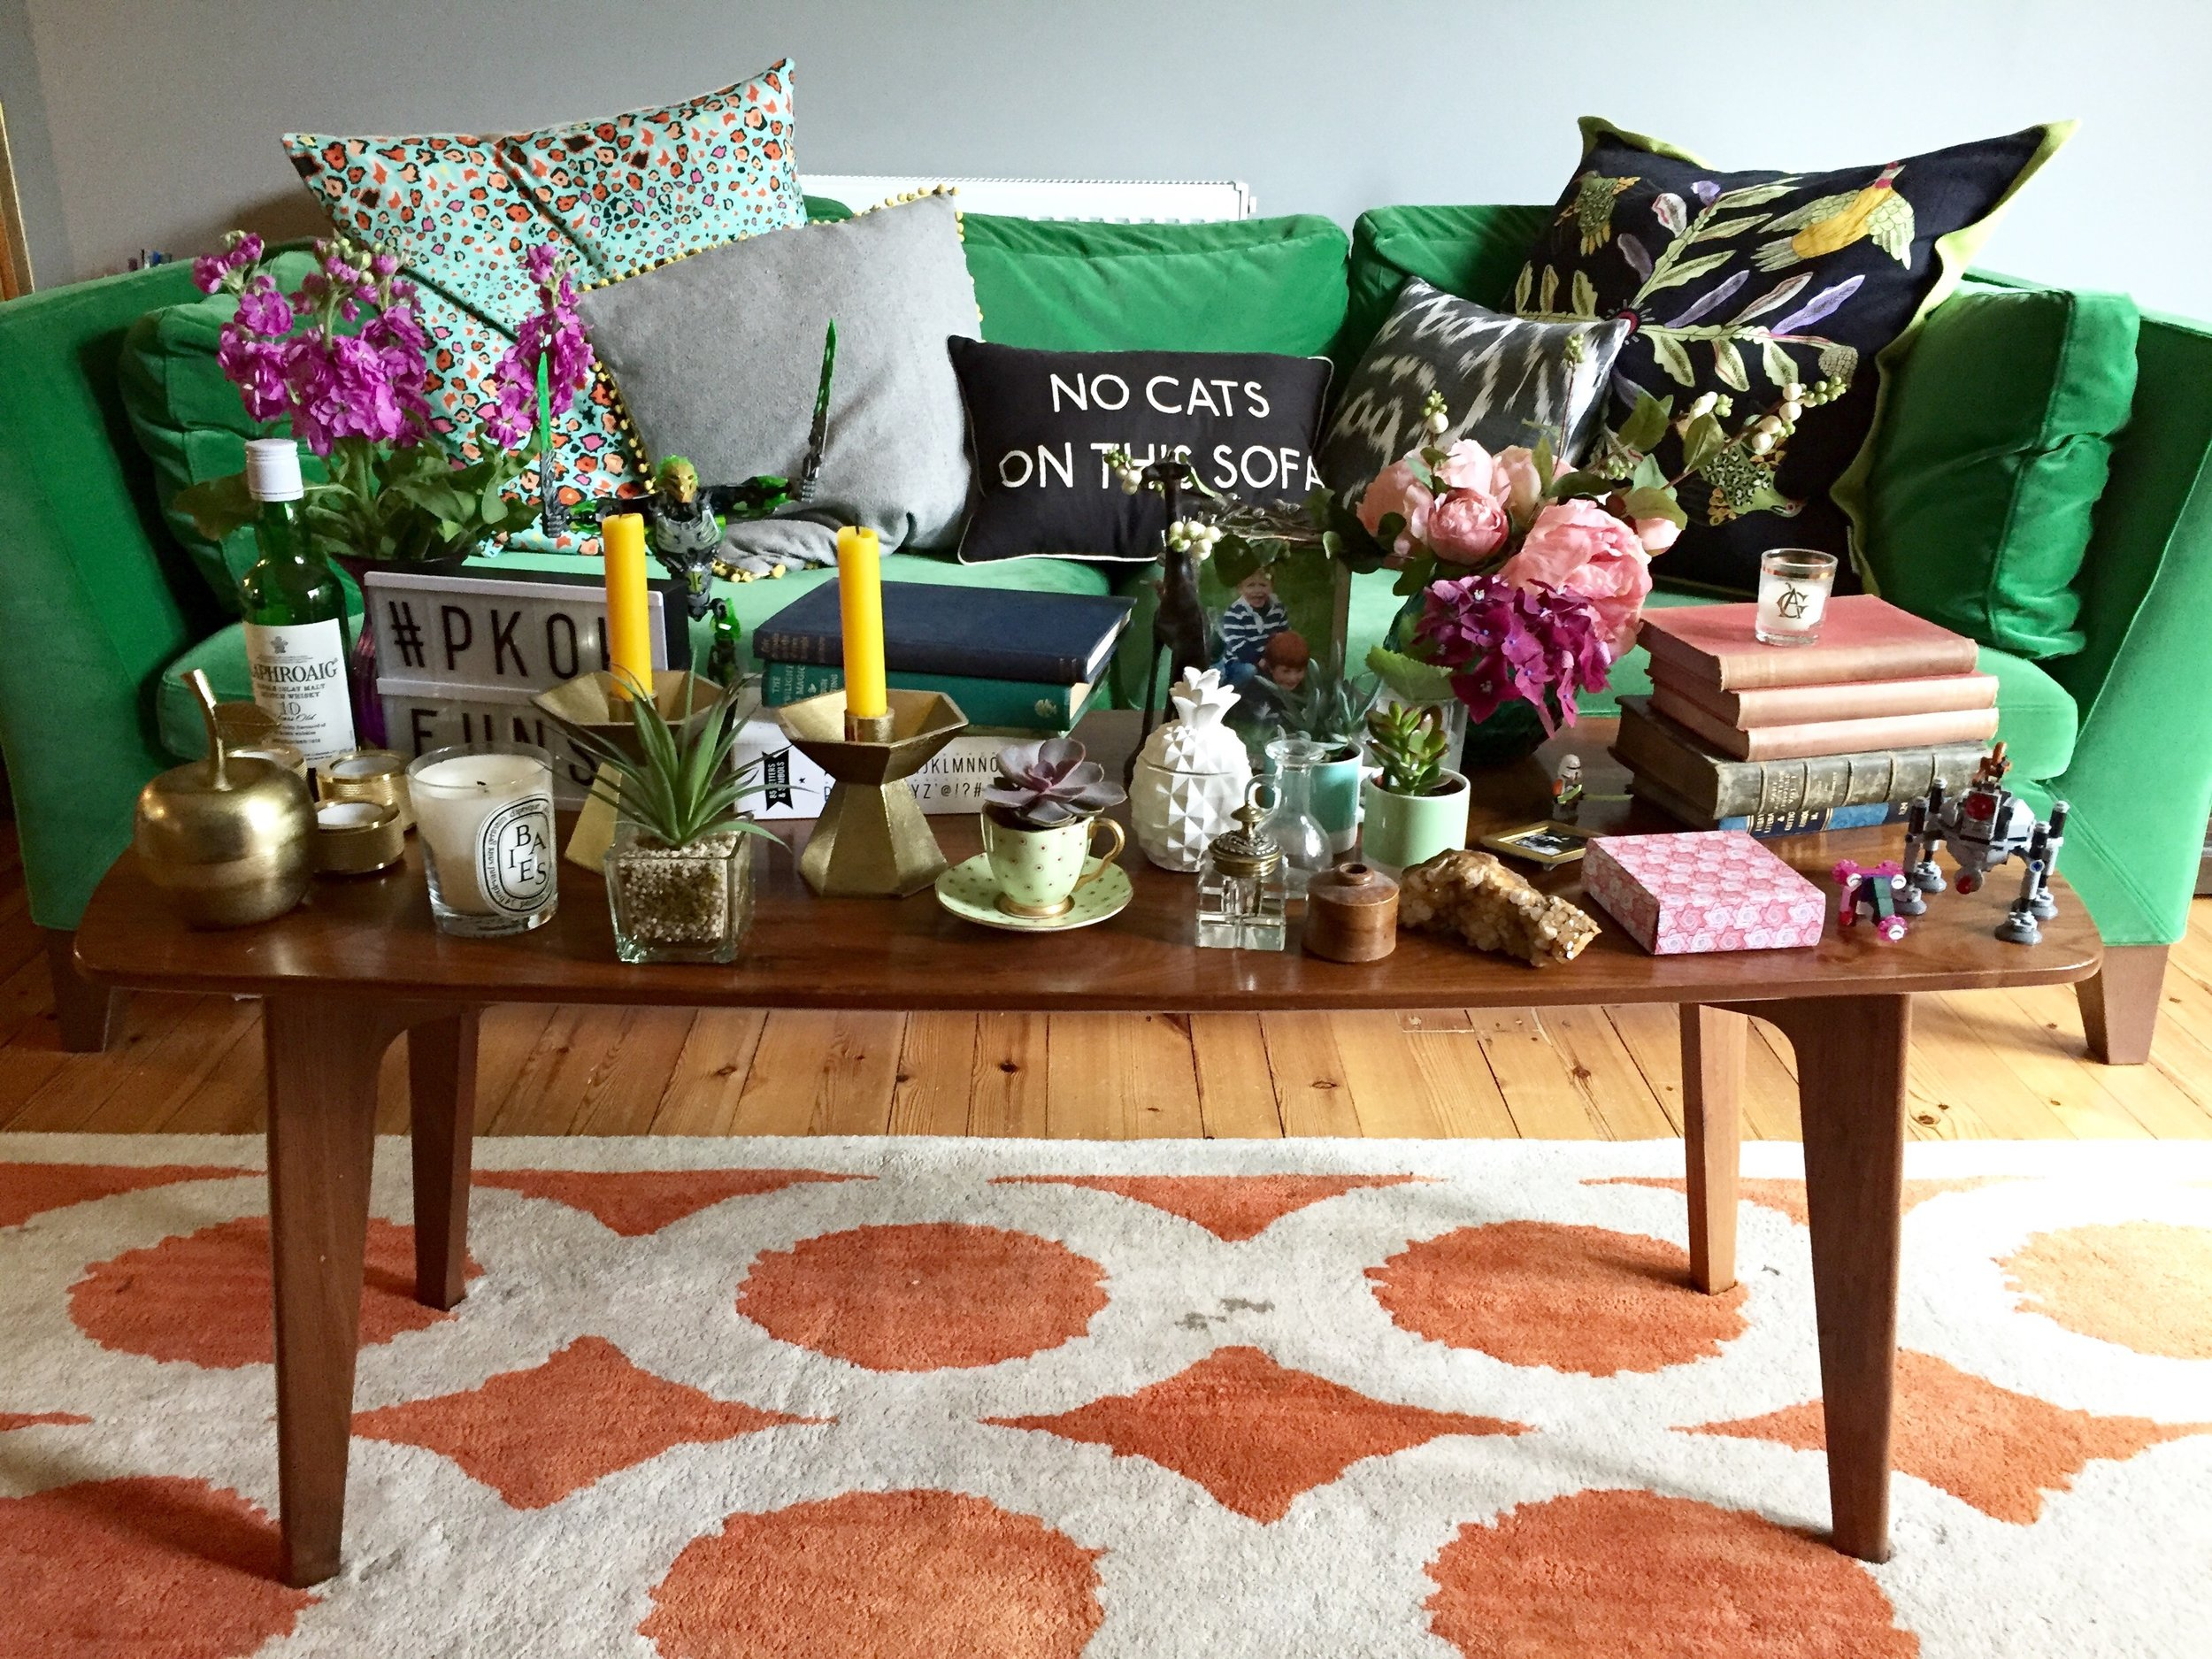 The styling prop table